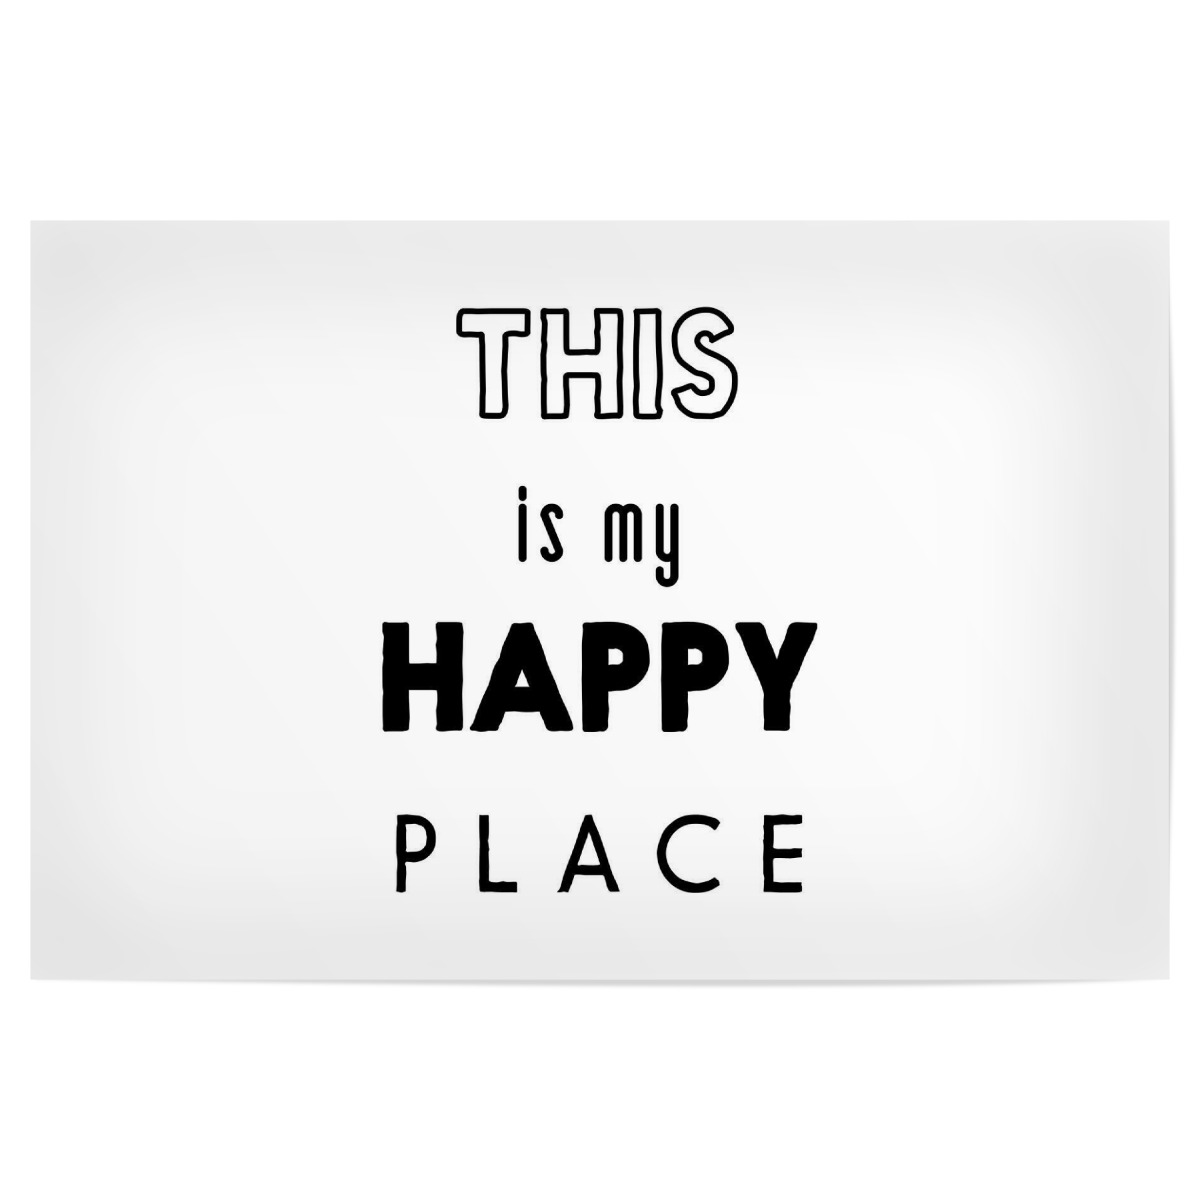 This is my Happy Place 12x12 cm Poster